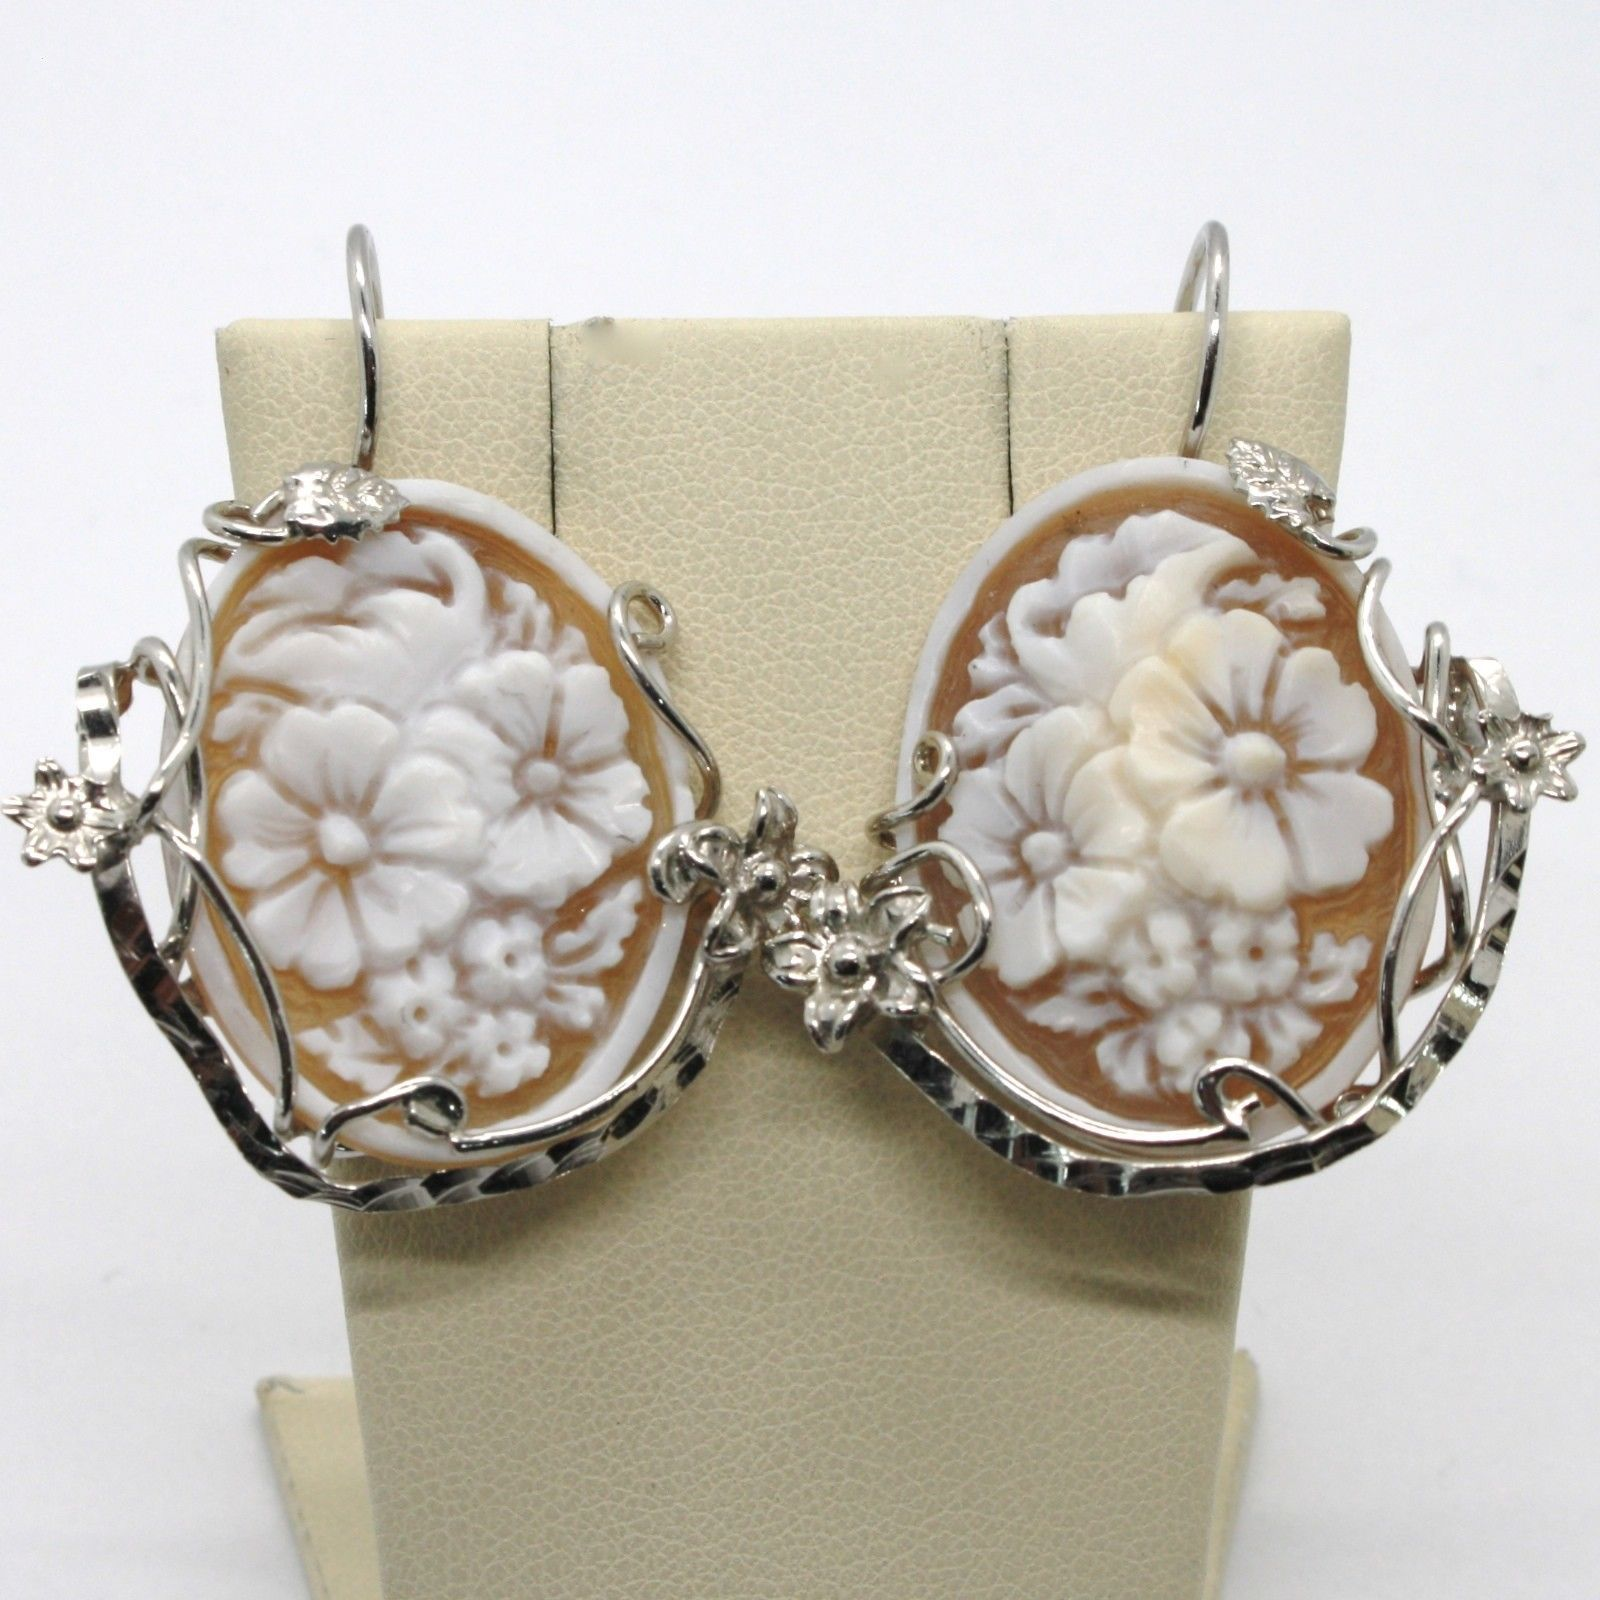 925 STERLING SILVER EARRINGS BIG OVAL FLOWER CAMEO FINELY HANDMADE IN ITALY